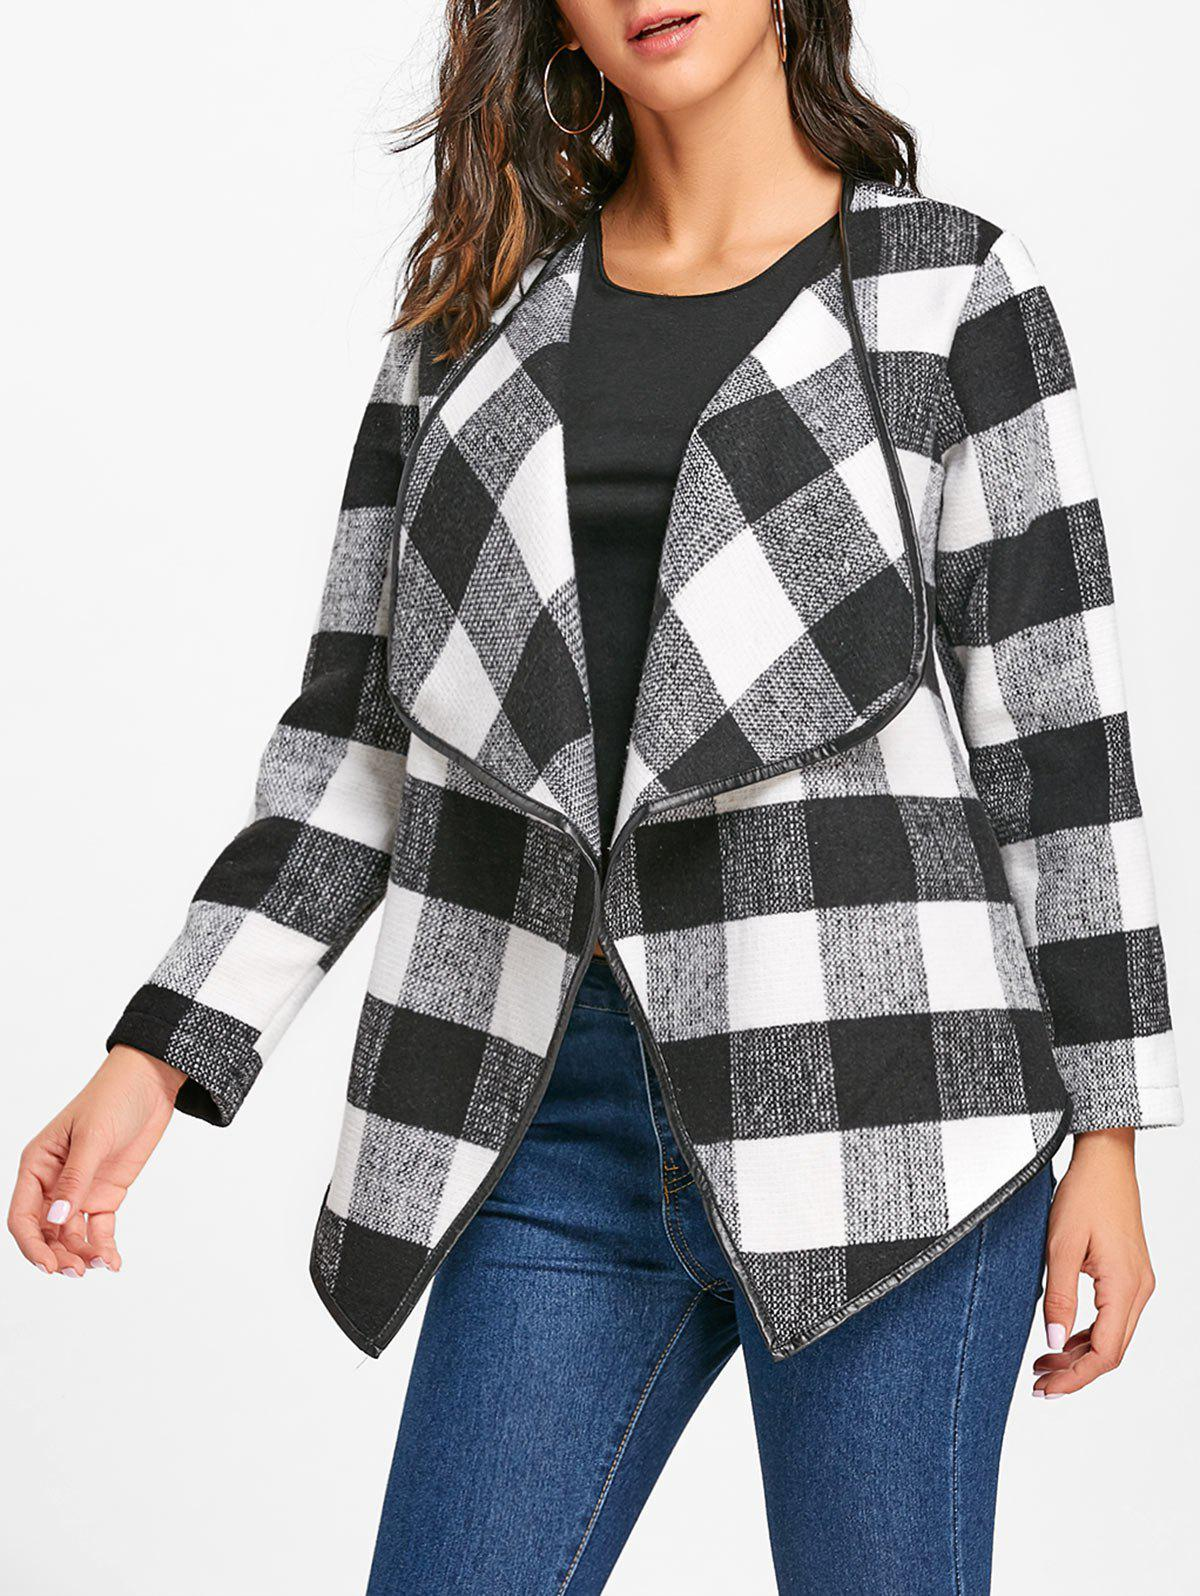 Plaid Turndown Collar Jacket - Blanc et Noir L